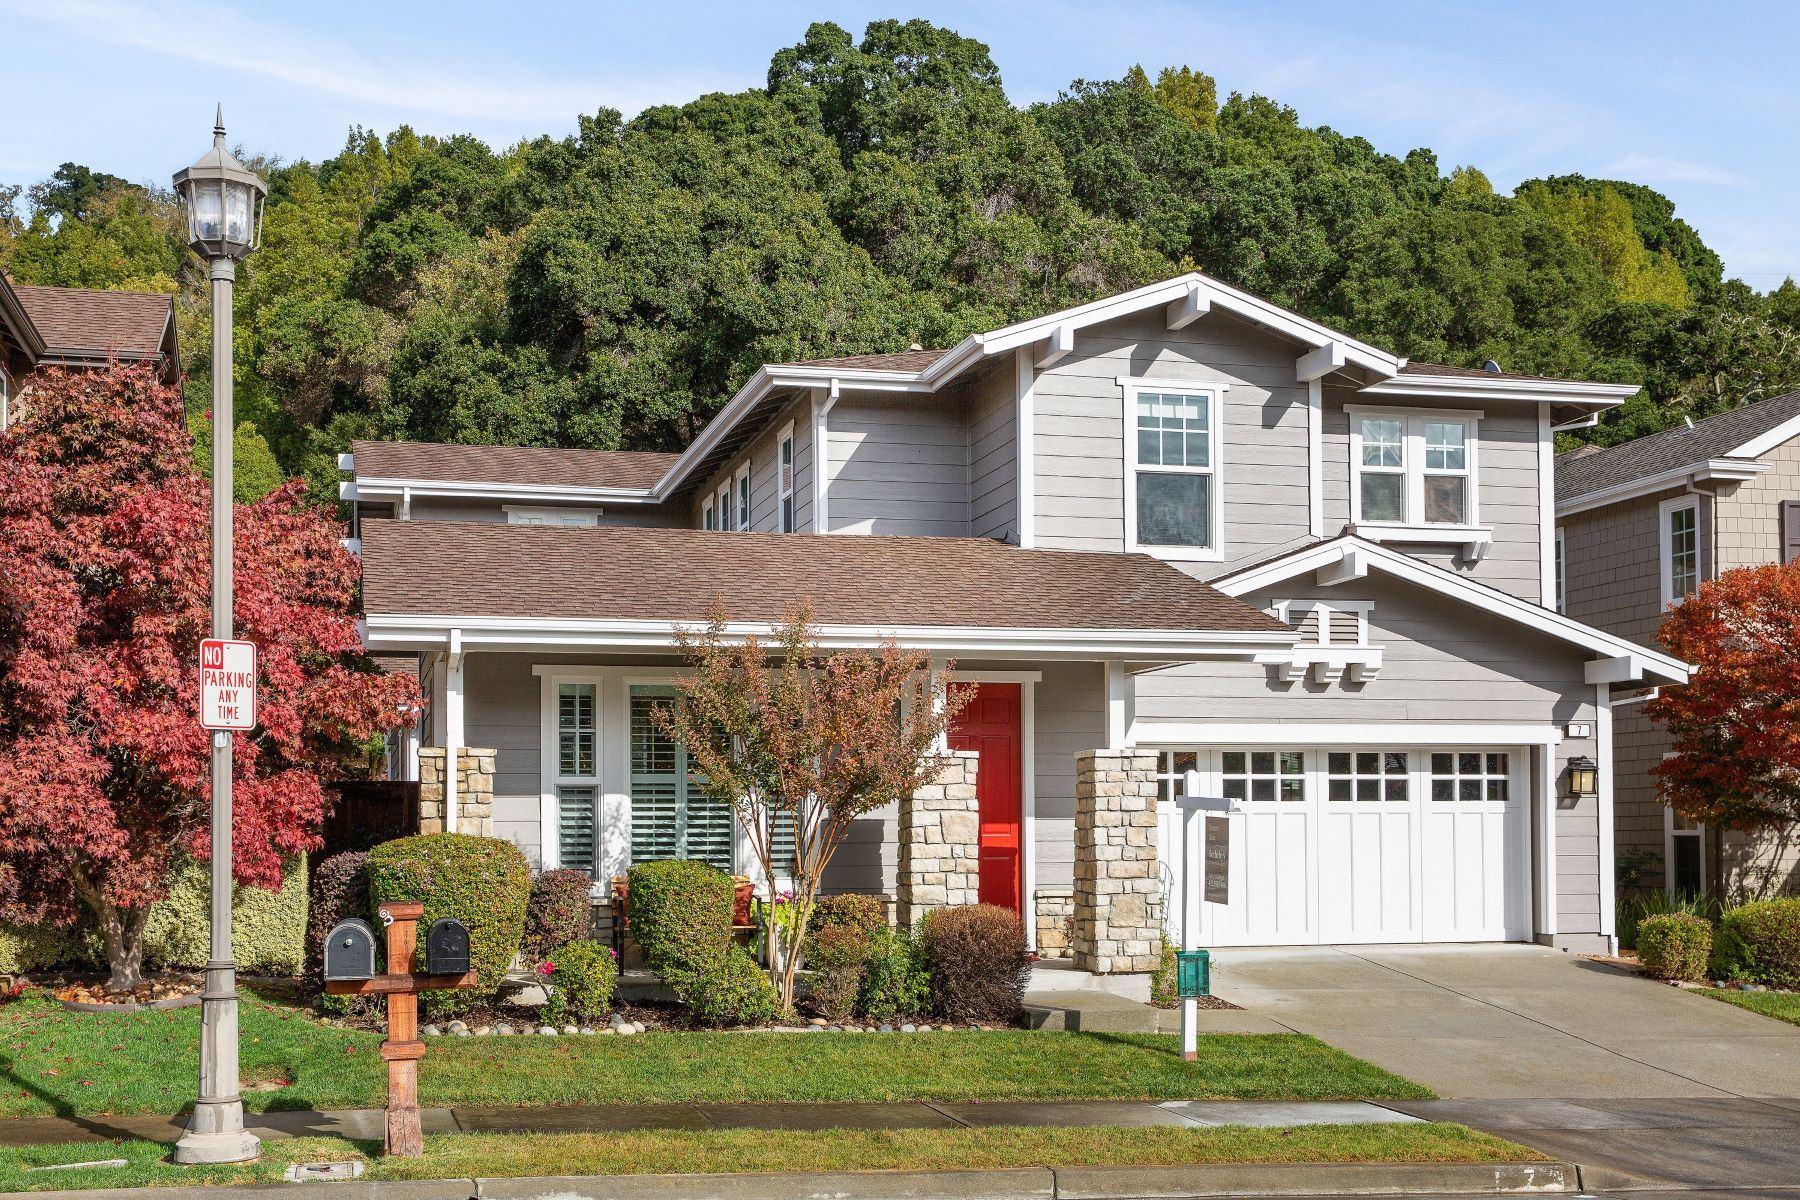 Property for Sale at Your Best Holiday Present! 7 Hollyleaf Way Novato, California 94949 United States